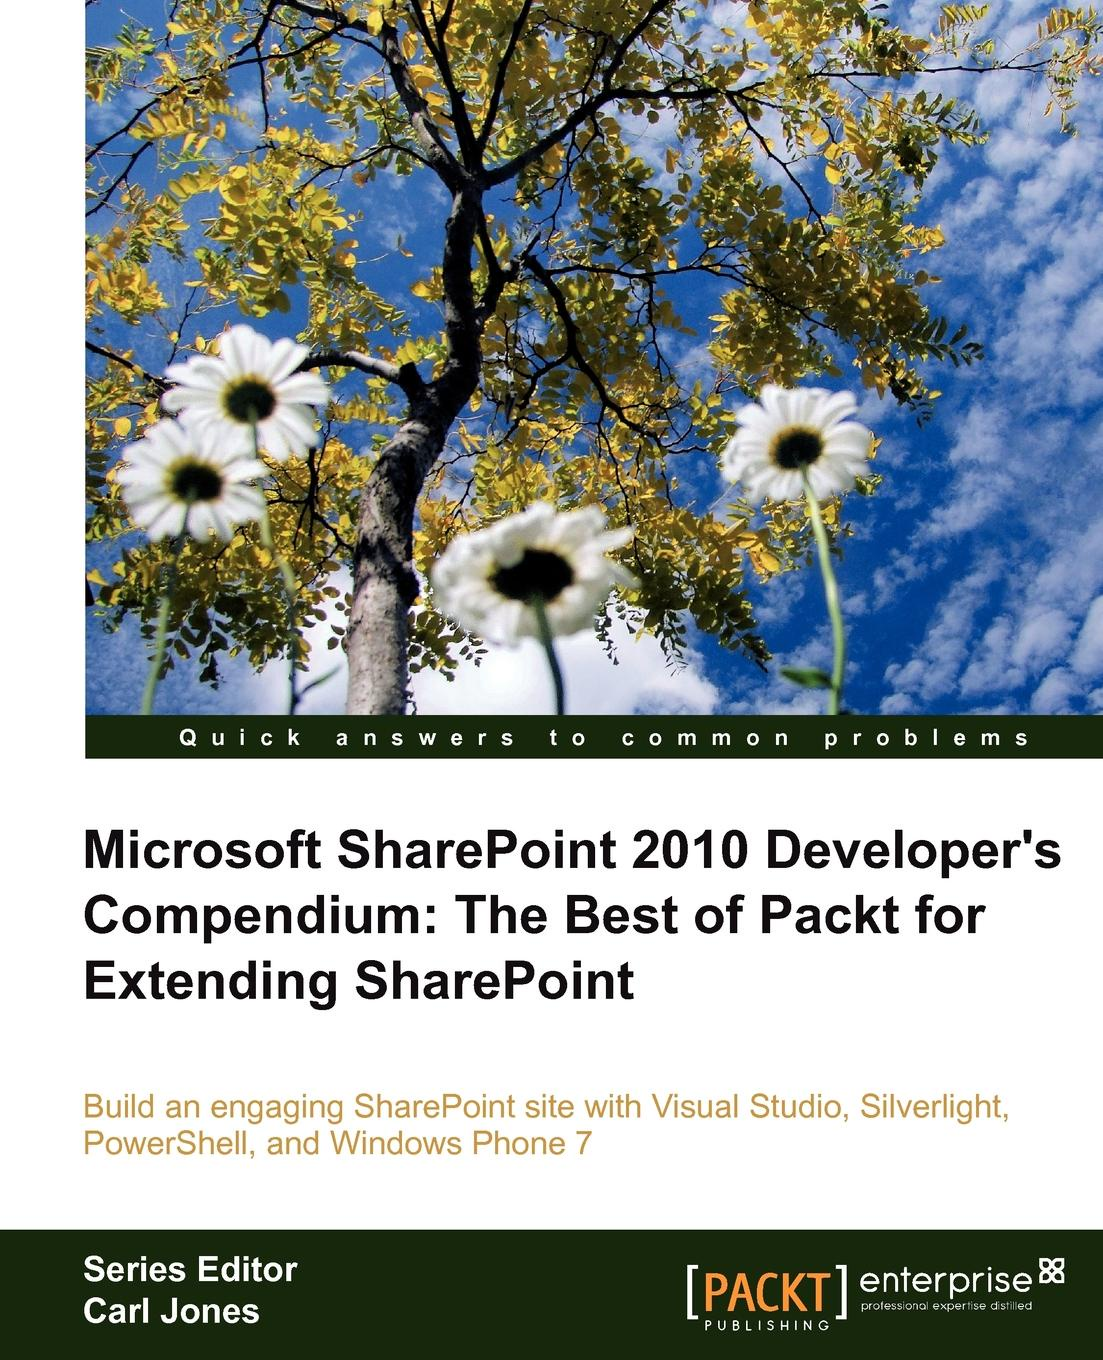 Carl Jones Microsoft Sharepoint 2010 Developer's Compendium. The Best of Packt for Extending Sharepoint sivakumar harinath professional microsoft powerpivot for excel and sharepoint